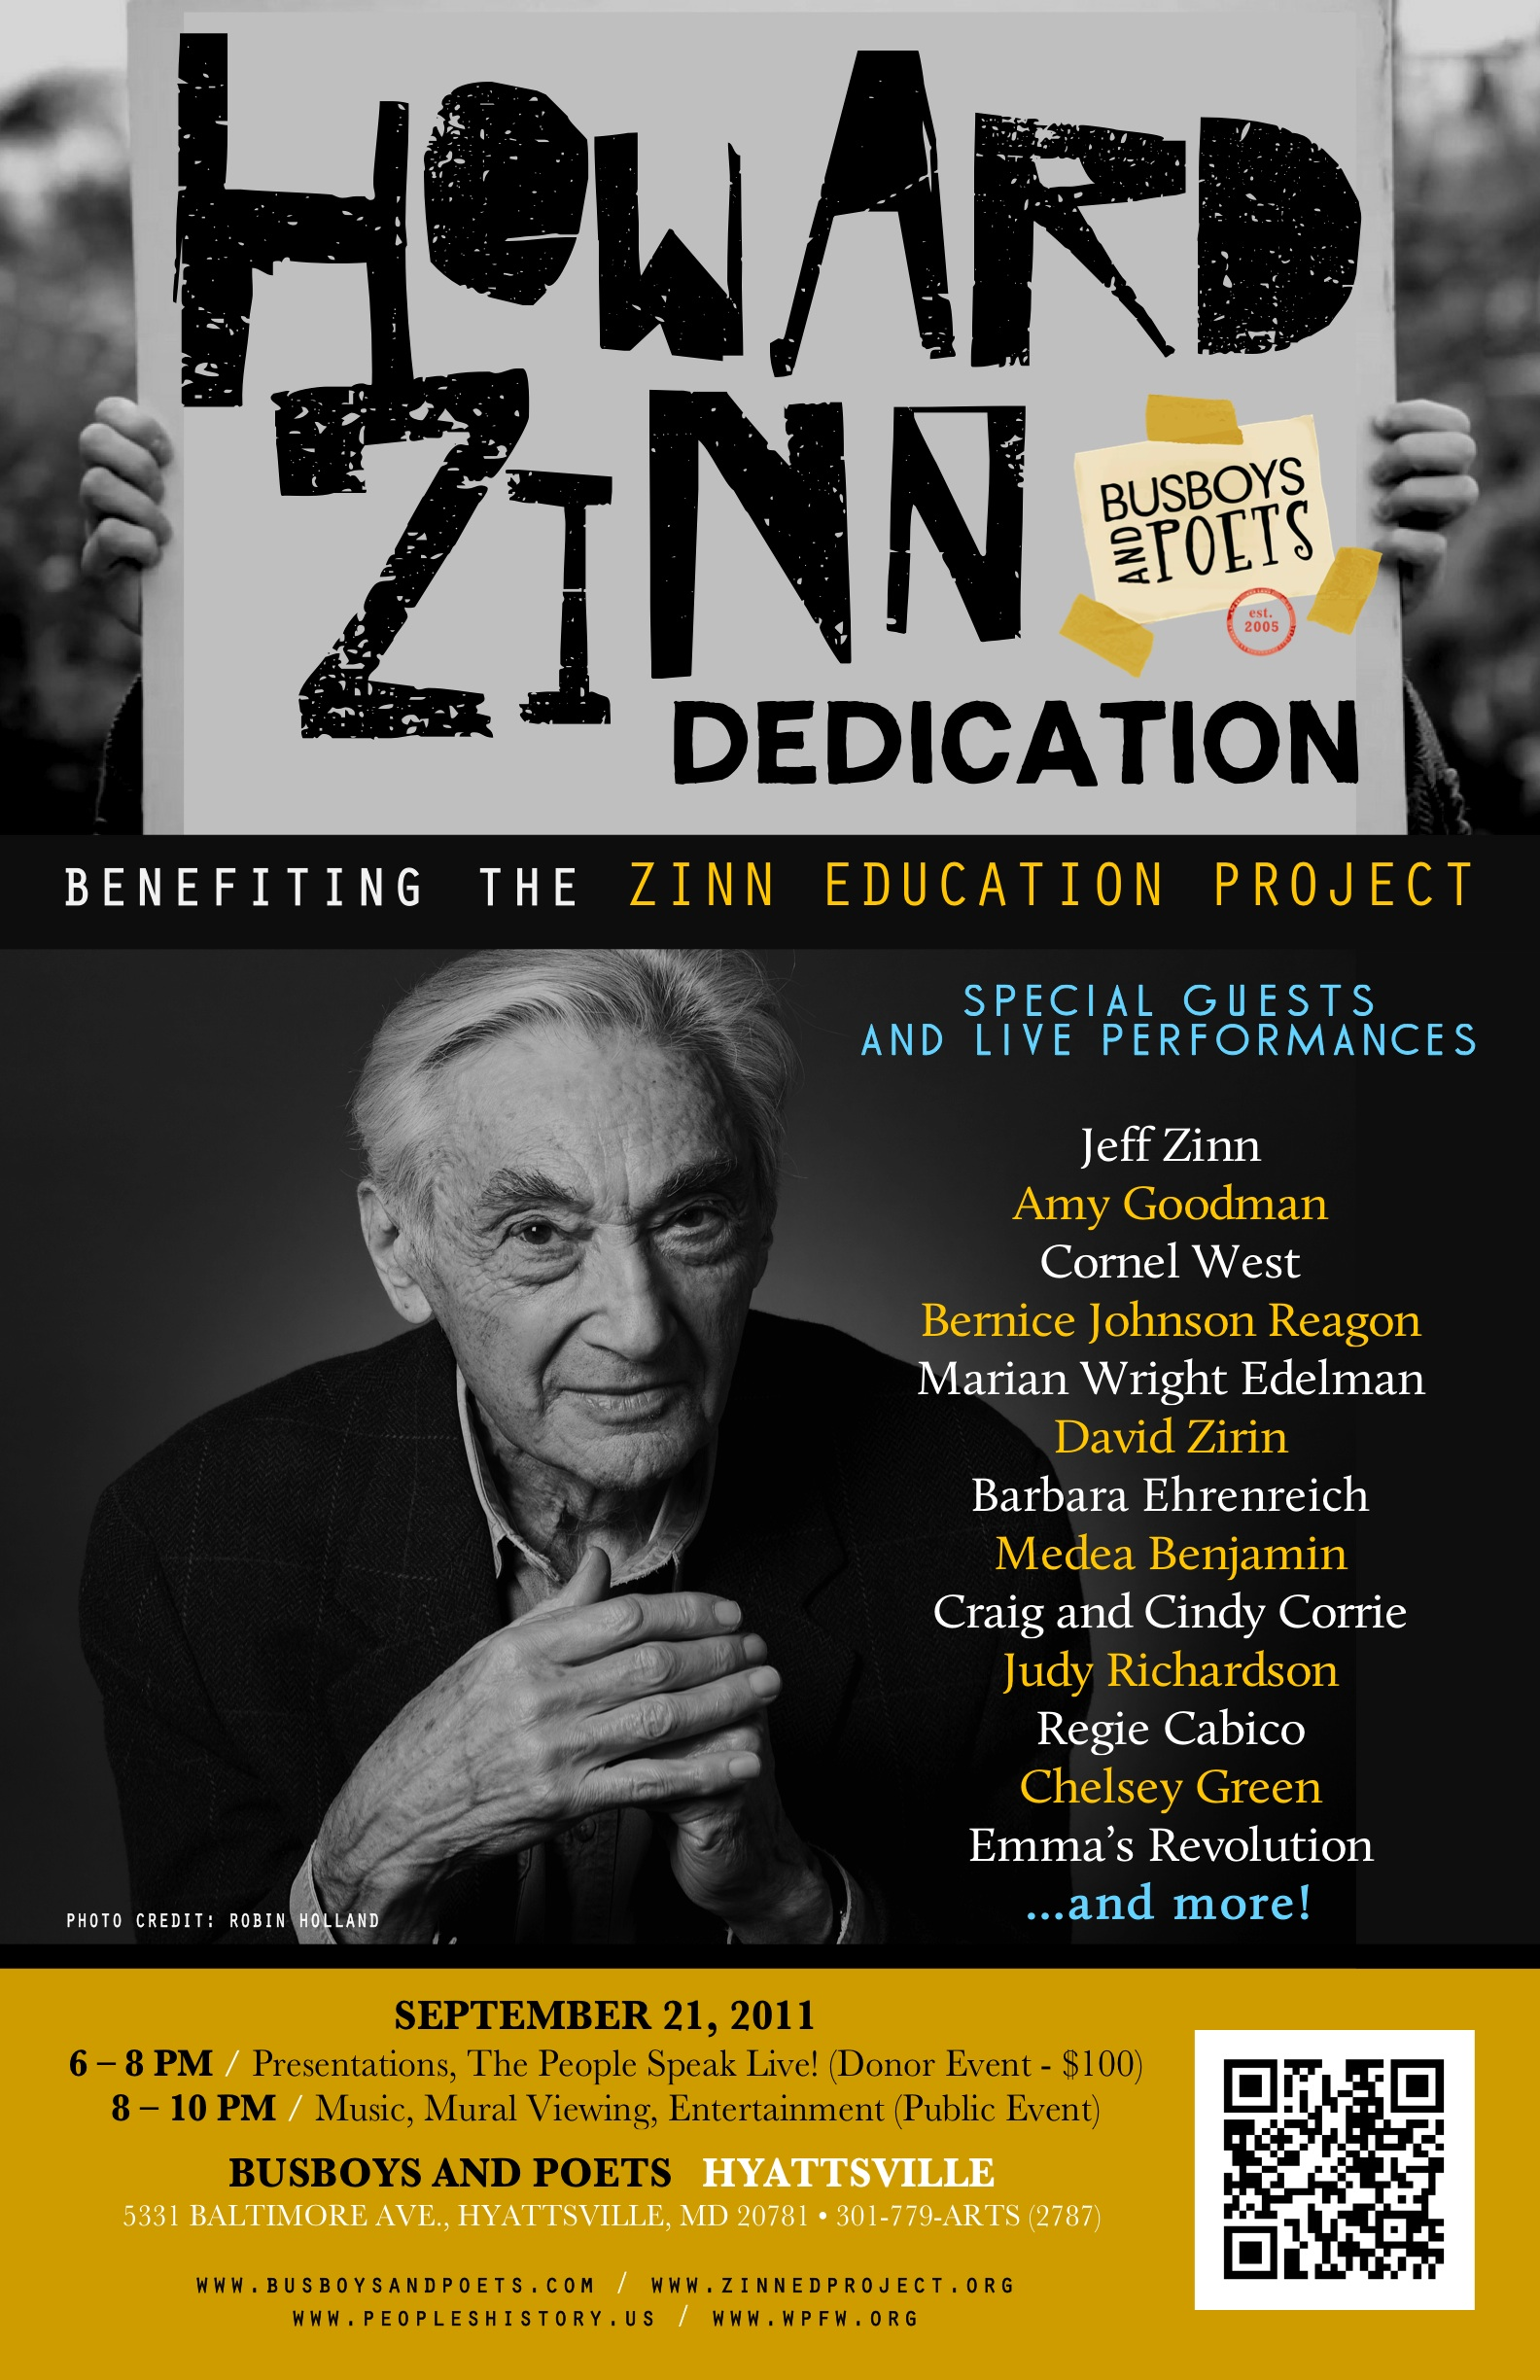 Howard Zinn Room Poster | Photo by Robin Holland